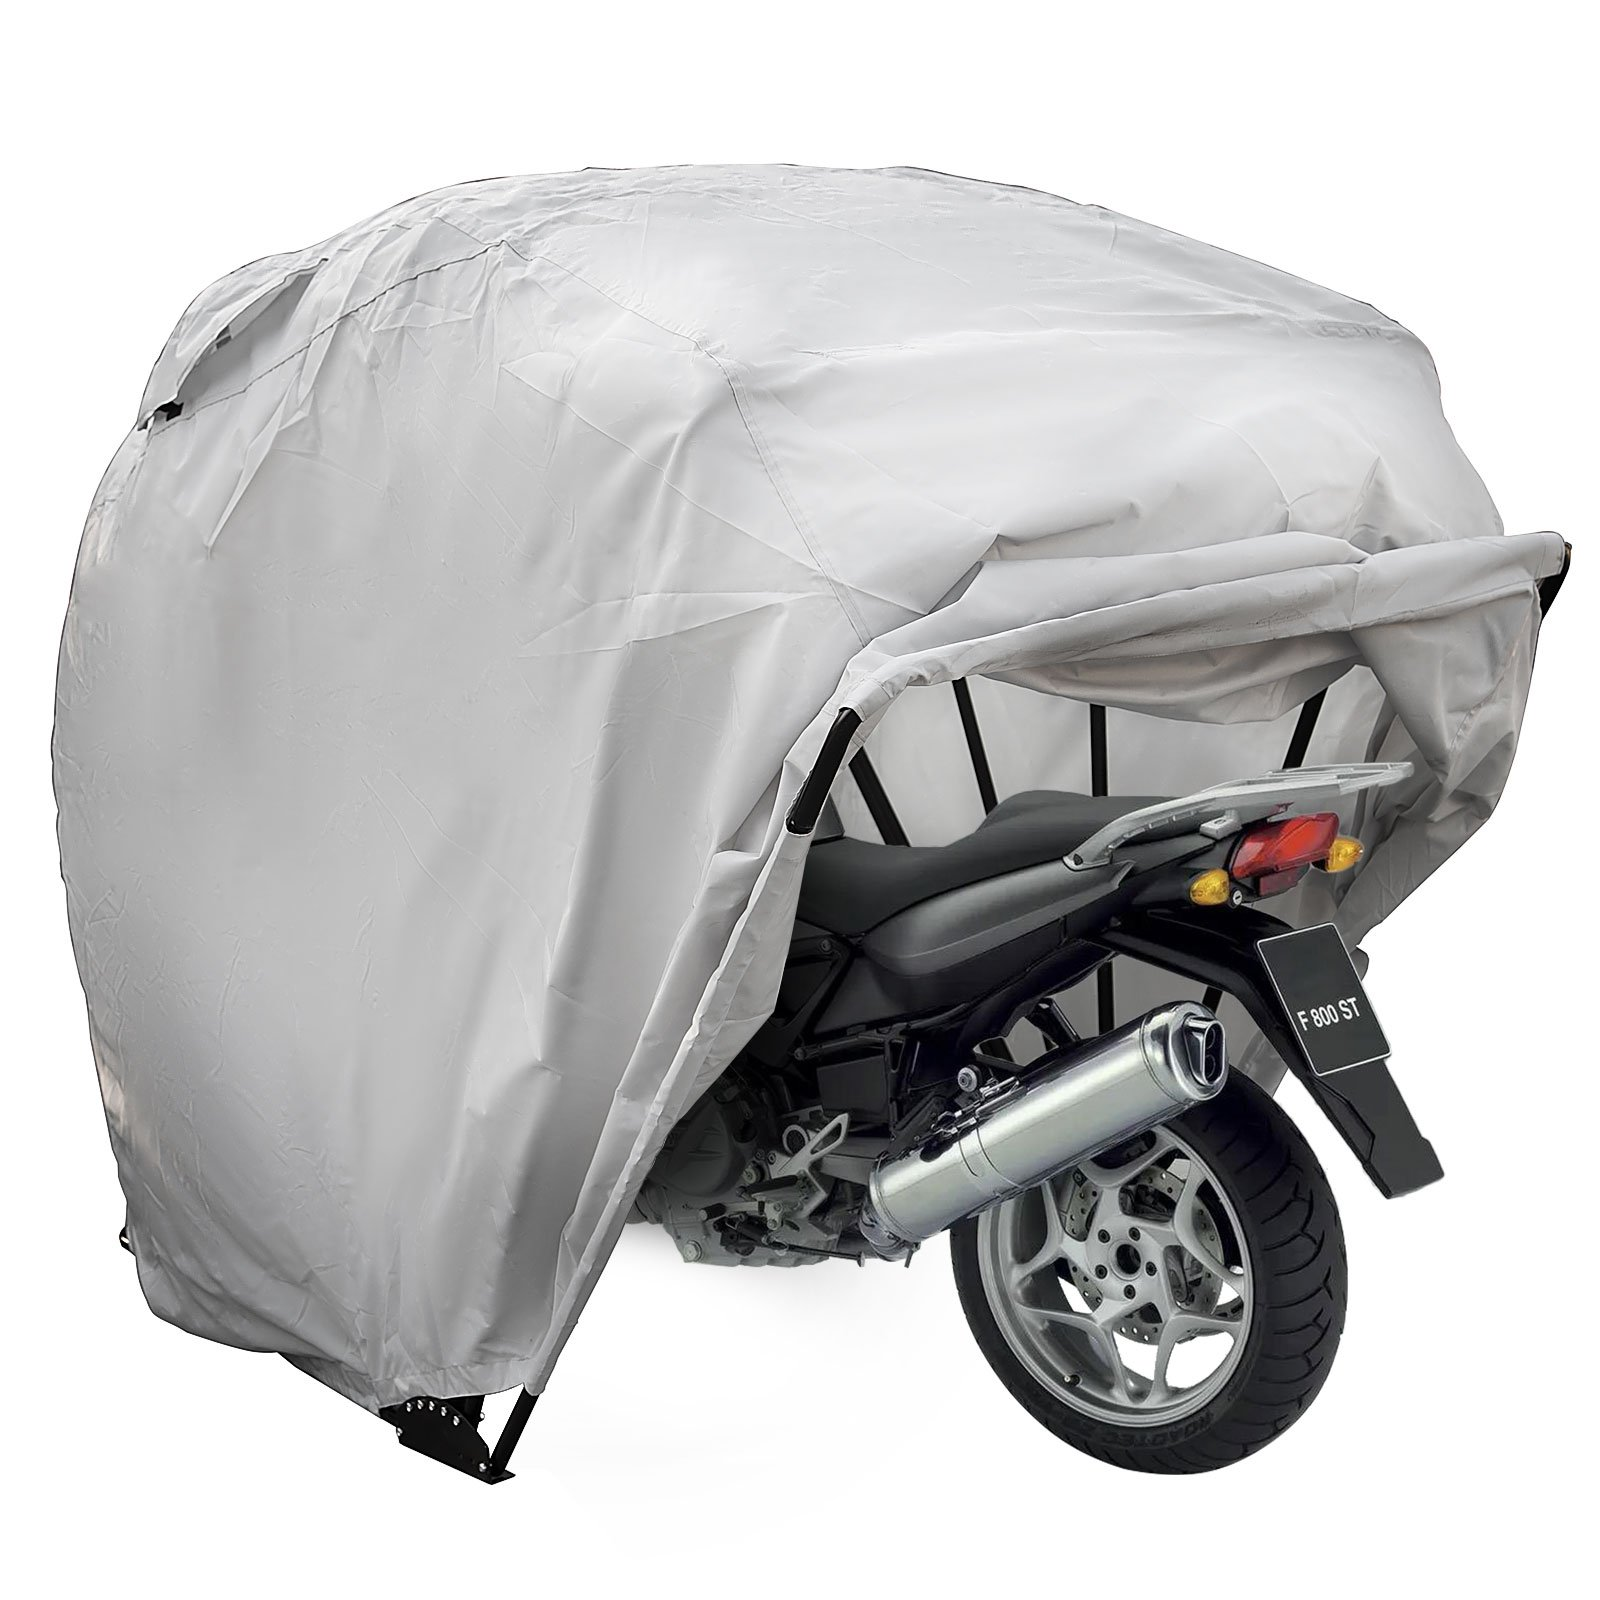 Happybuy Motorcycle Shelter Storage Waterproof Motorbike Storage Tent Oxford 600D Silver Color Motorcycle Shelter Shed with Carry Bag